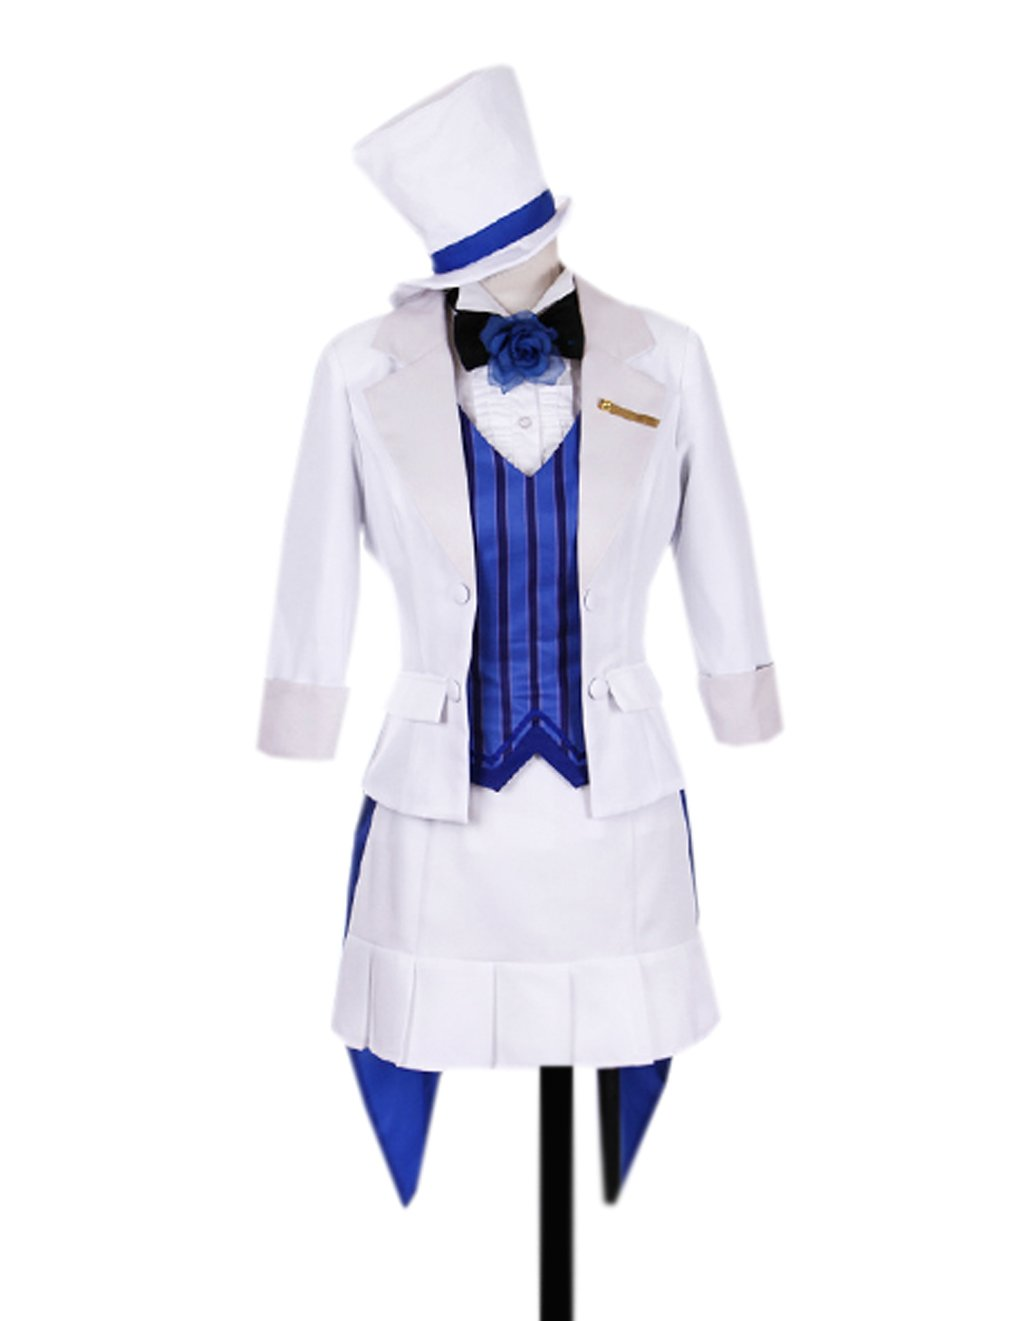 Dreamcosplay Animation Love live Sonoda Umi Magician Outfits Cosplay